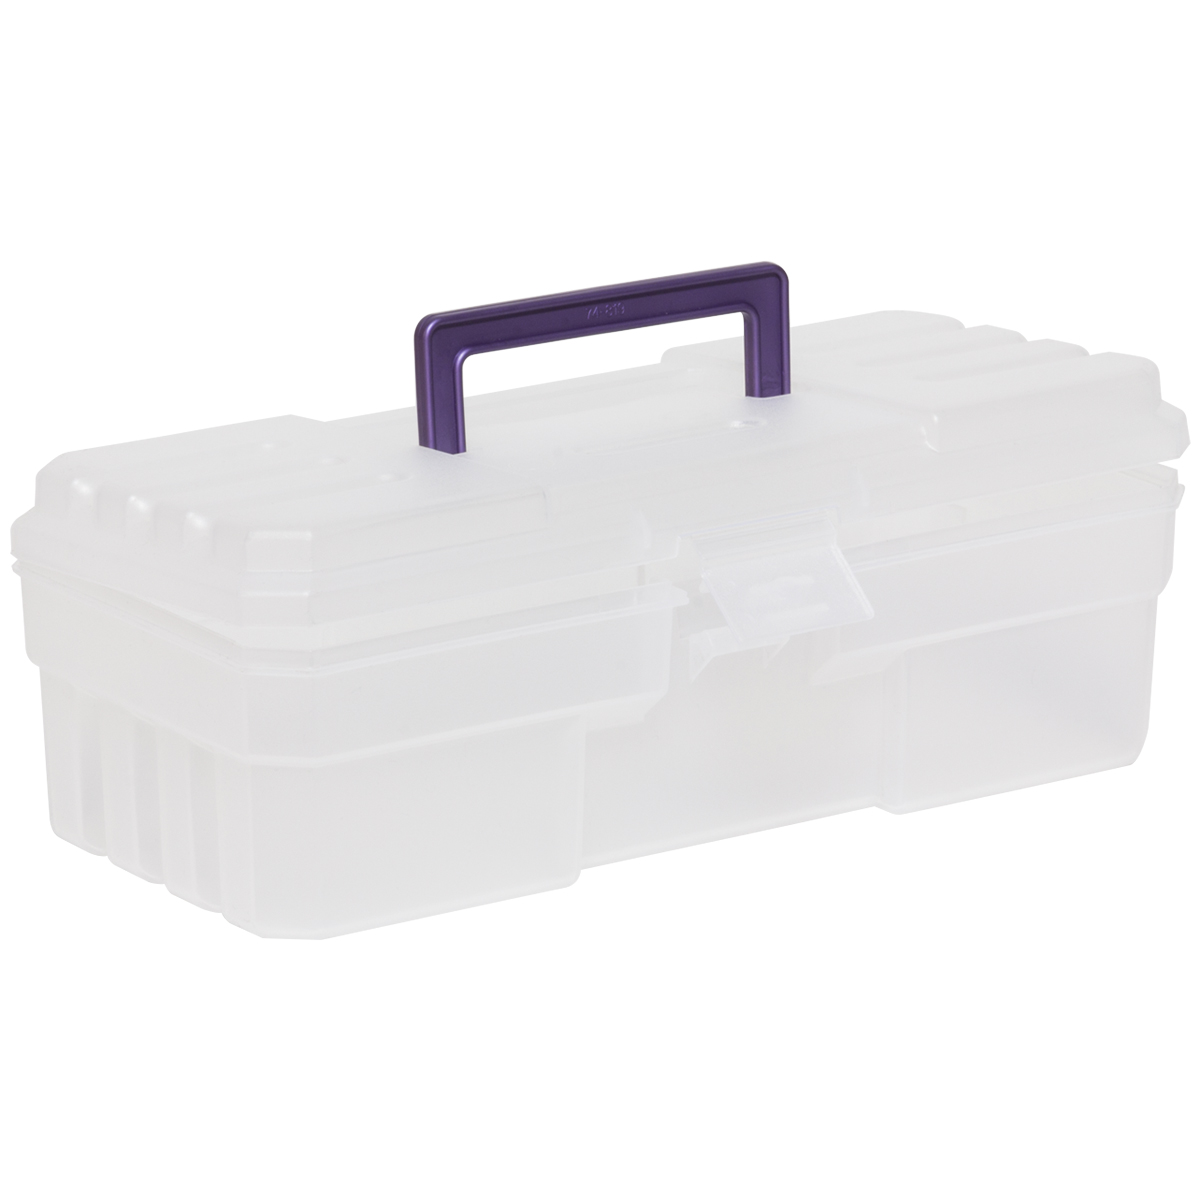 Craft Supply Box 6 x 12 x 4, Purple/Clear .  This item sold in carton quantities of 6.